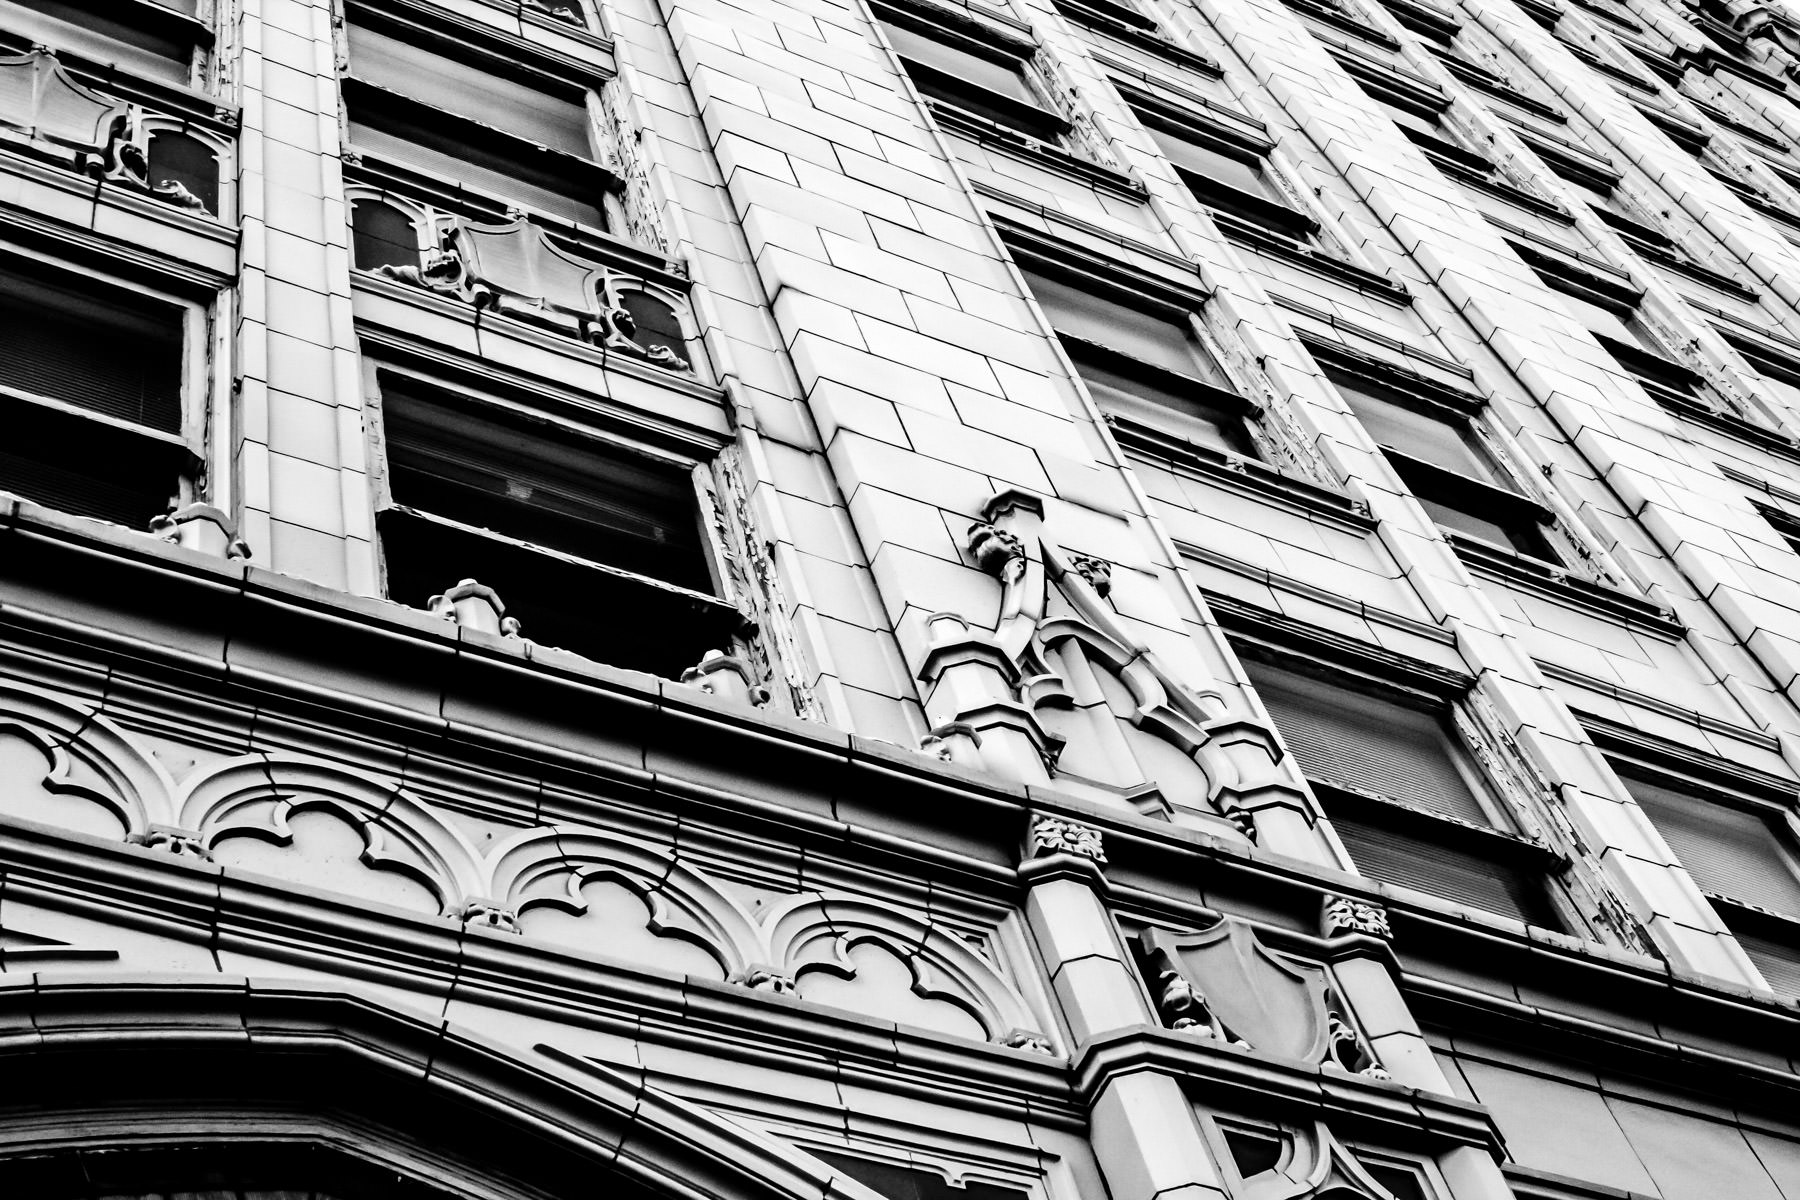 Detail of the Chase Bank building in Corsicana, Texas.